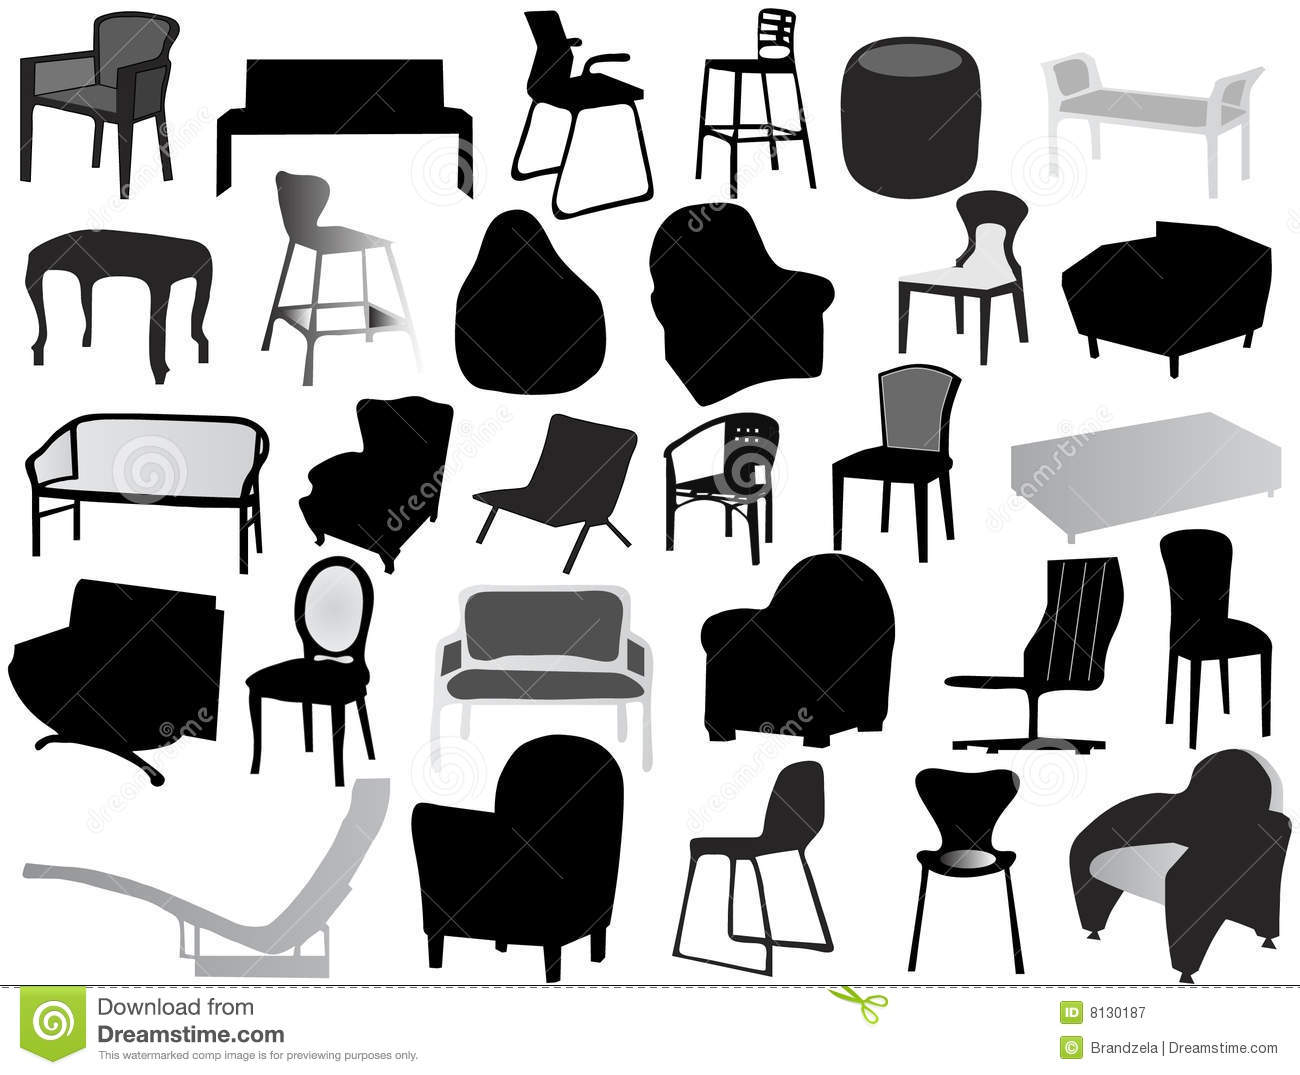 Silhouette Of Chair Royalty Free Stock Photography - Image: 8130187